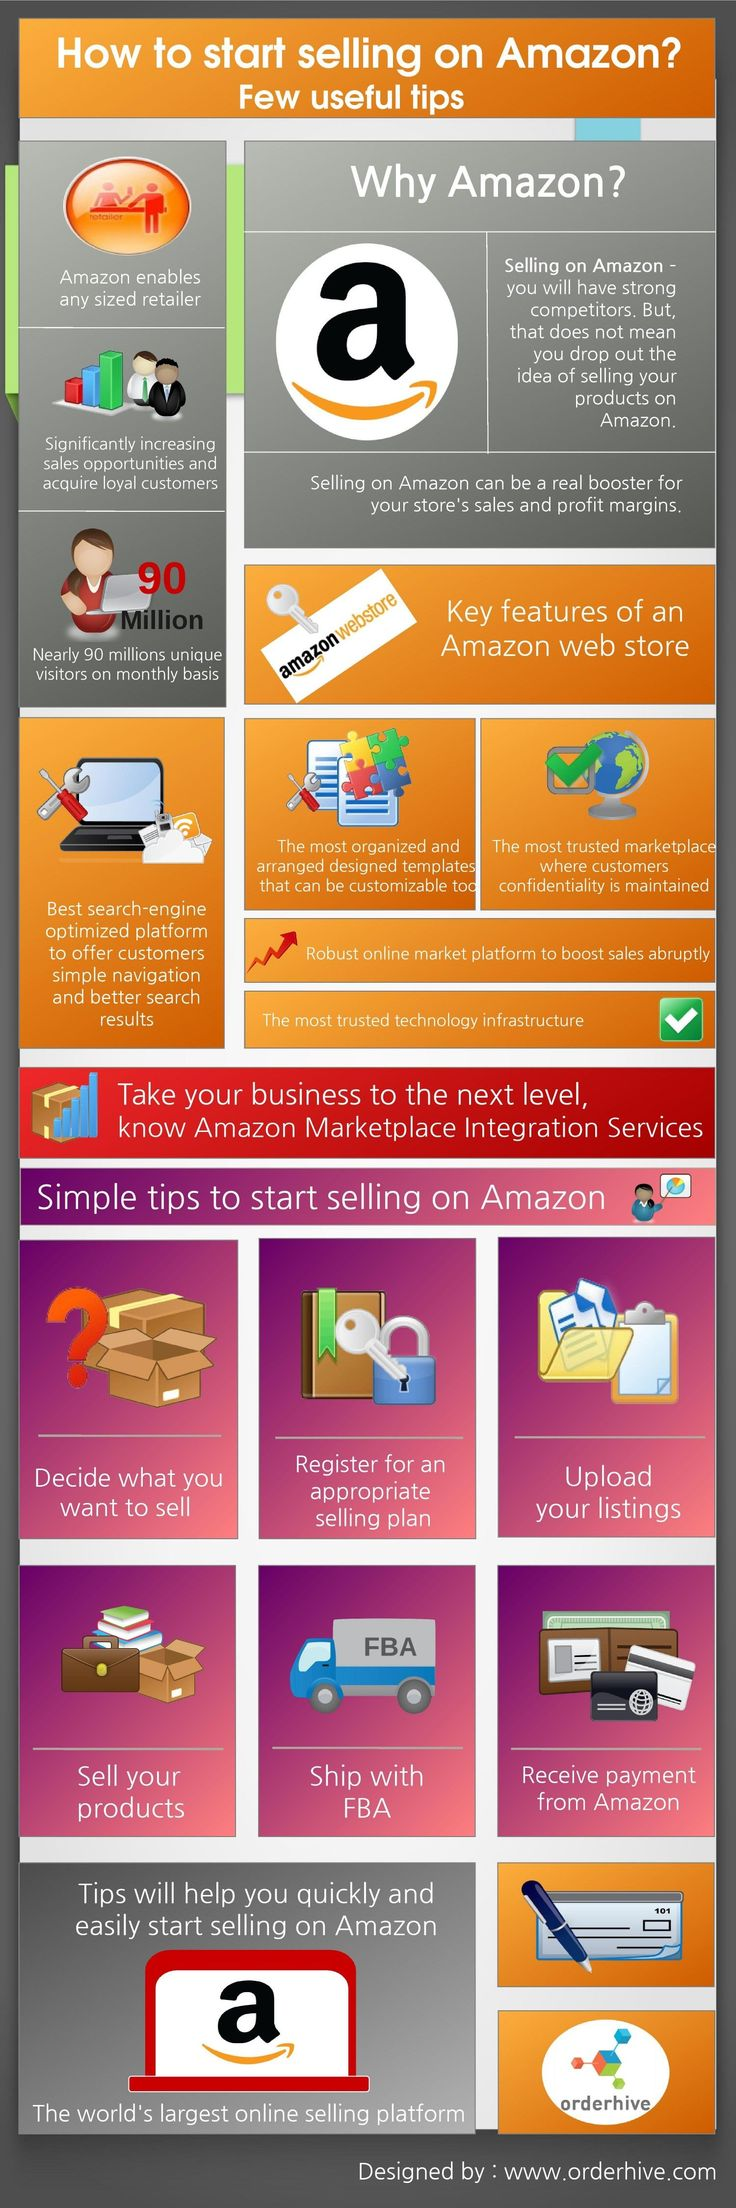 How to start selling on Amazon? Infographic